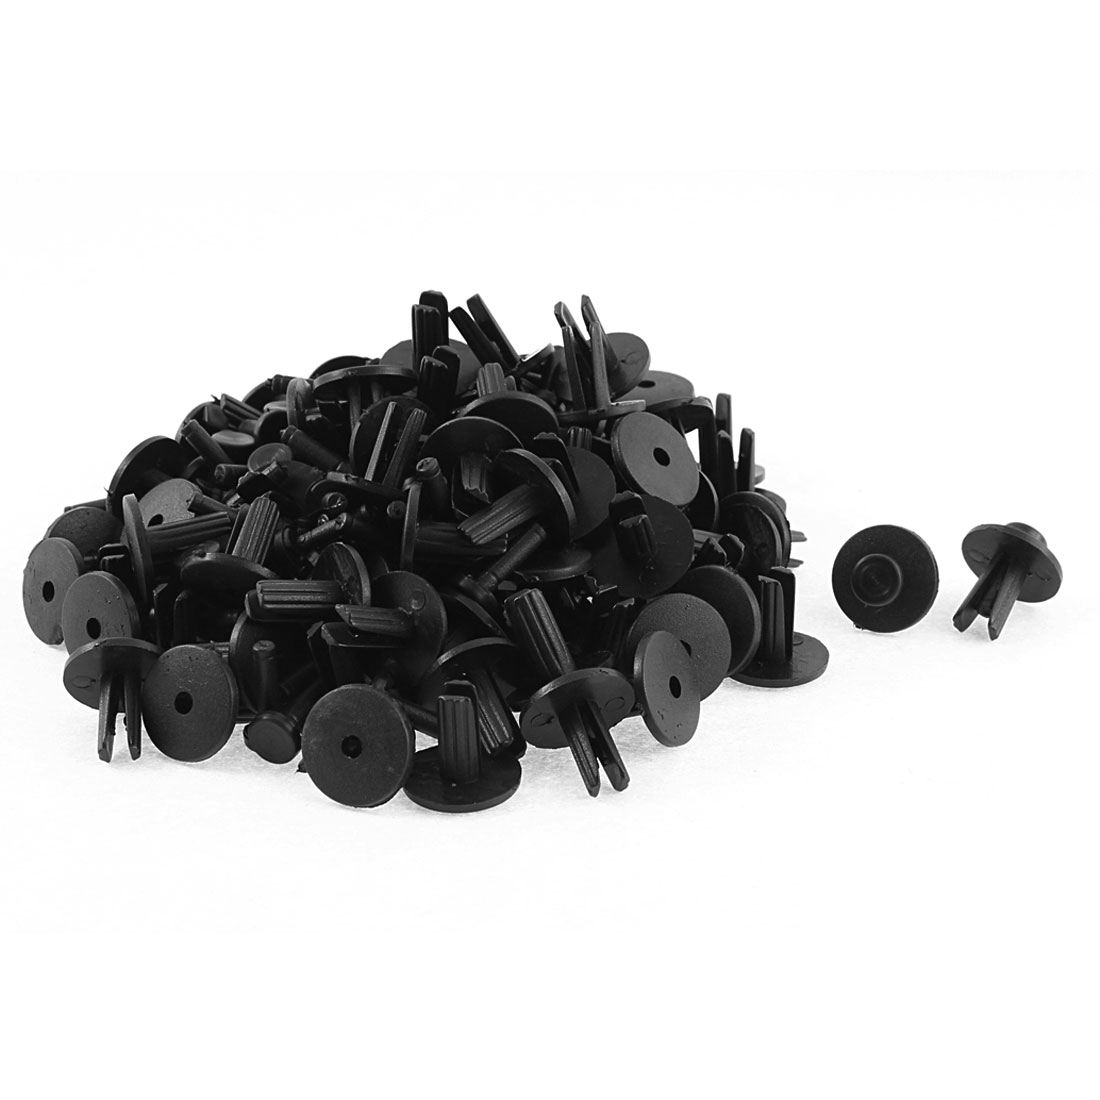 100 Pcs 18mm Head Dia Plastic Push-Type Defender Door Bumper Retainer Clip Rivets